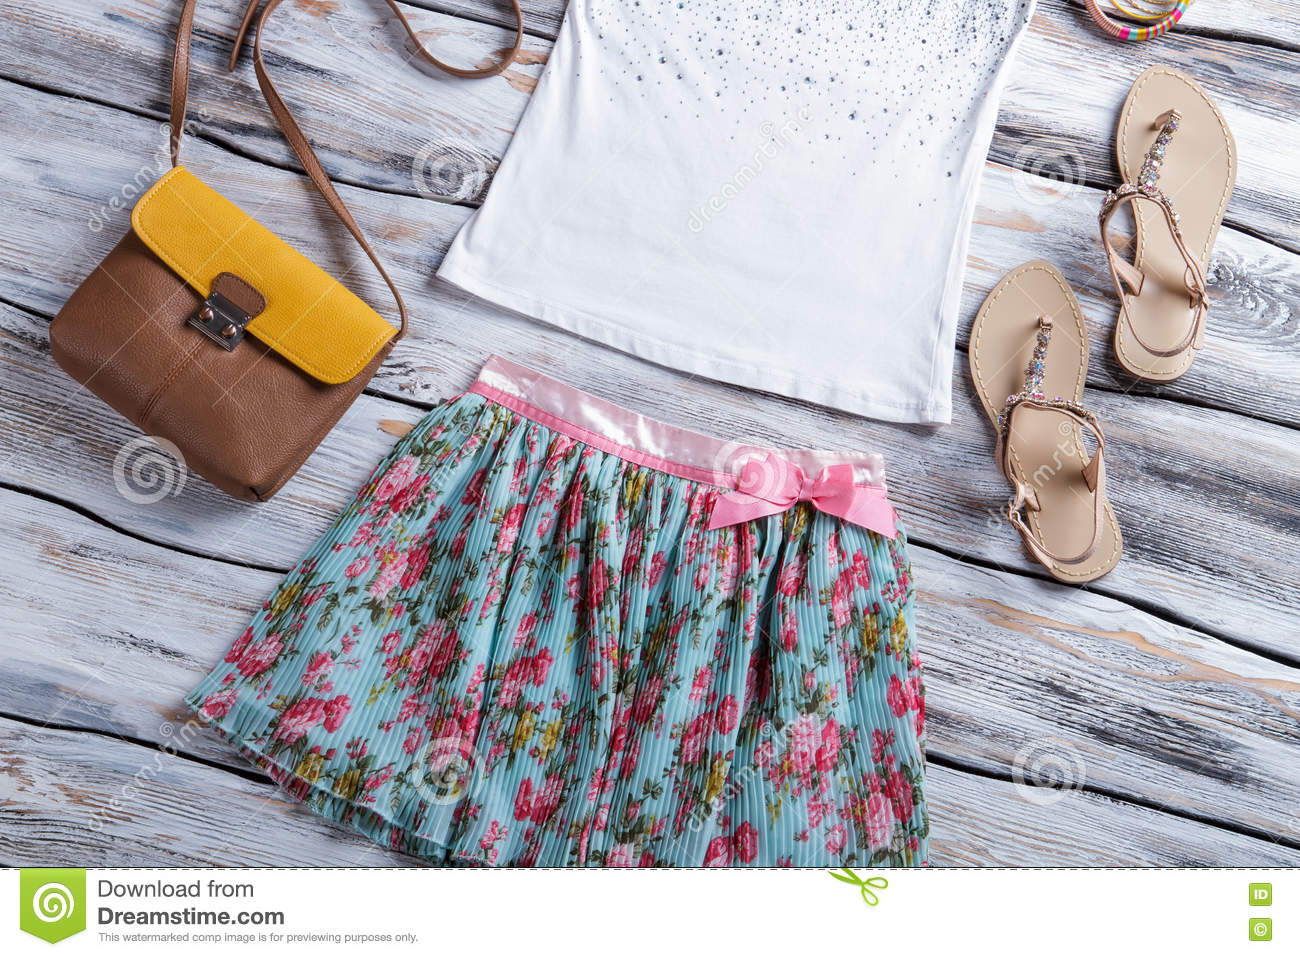 23e85ff2fd41 Floral skirt and white top. Top with sandals and purse. Trendy bicolor purse  on sale. Selection of girl s summer clothing.